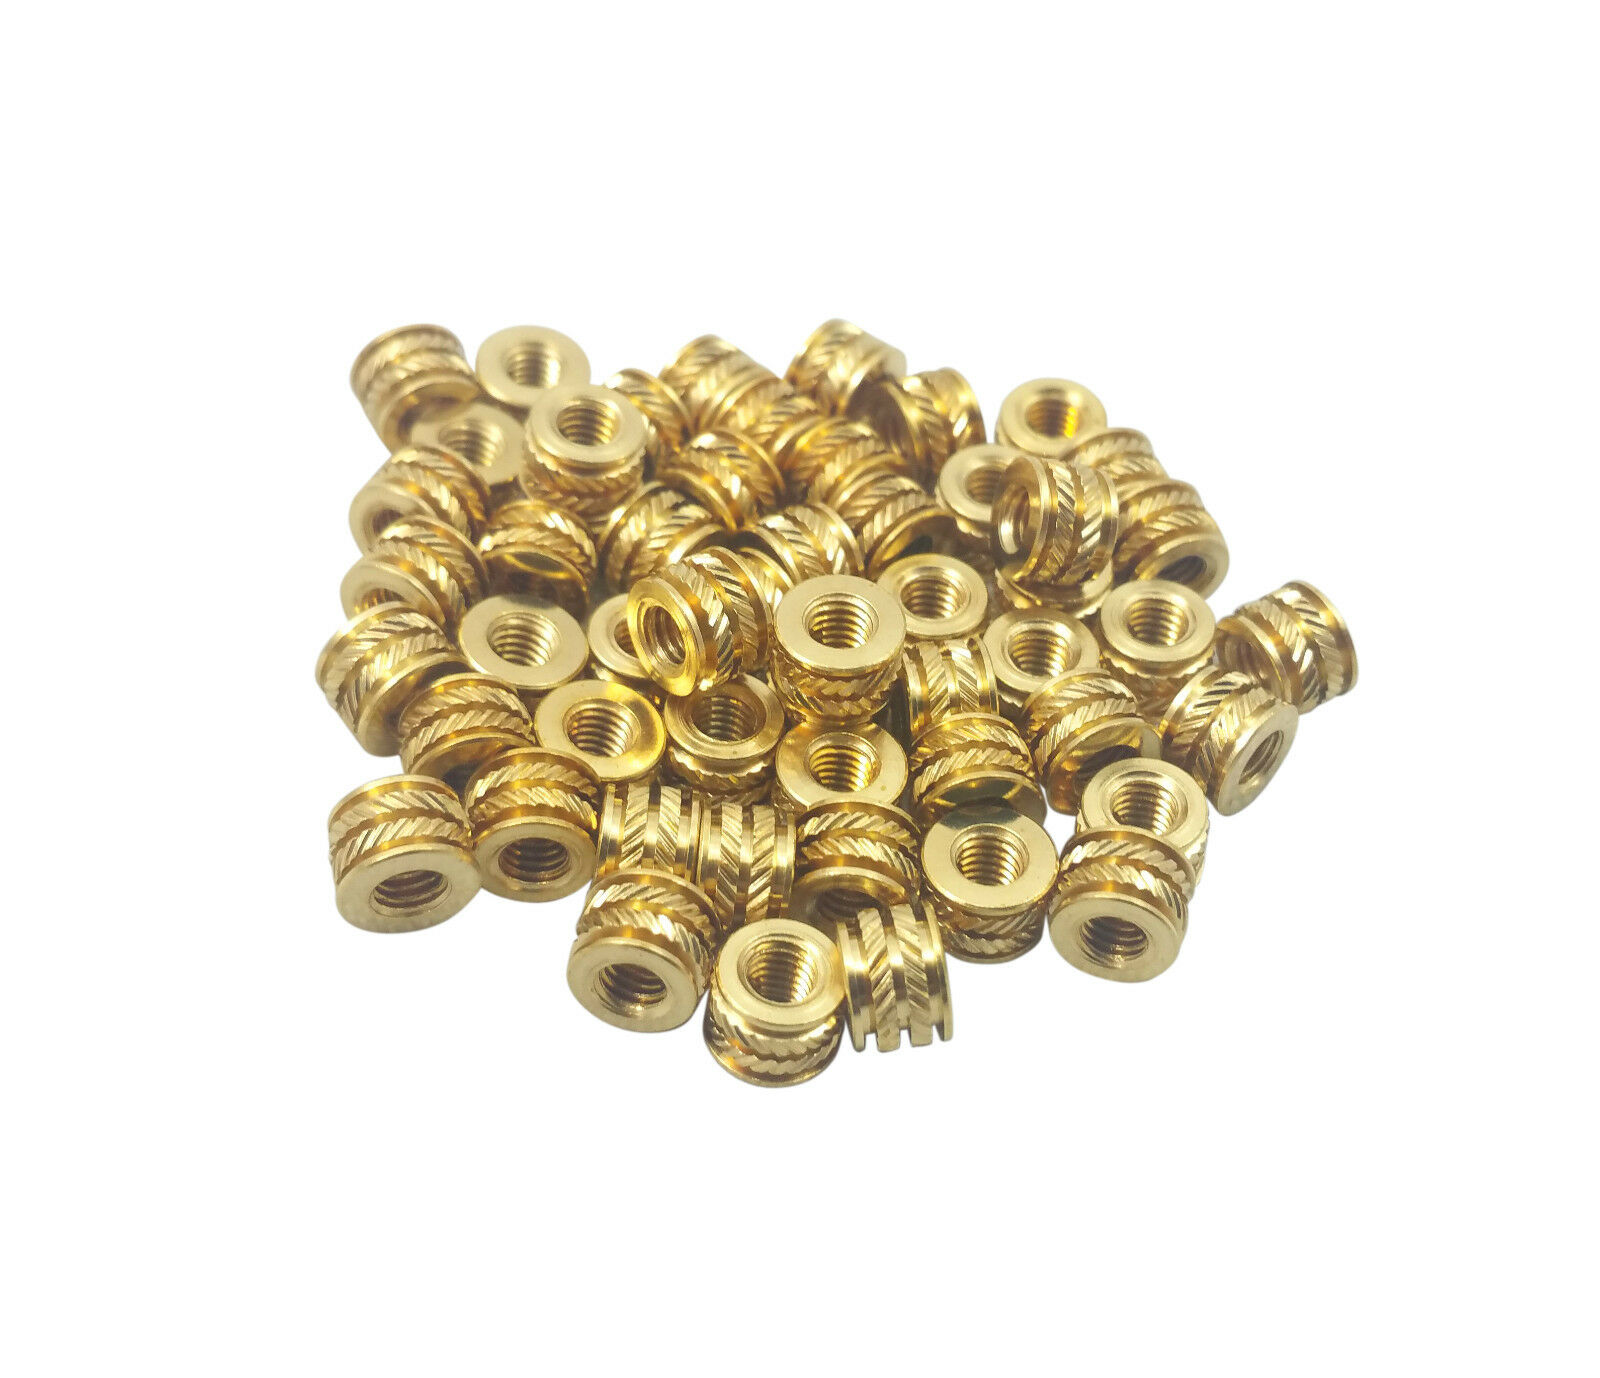 M2 Brass Threaded Inserts  BAG OF 50  3D Printing Screws